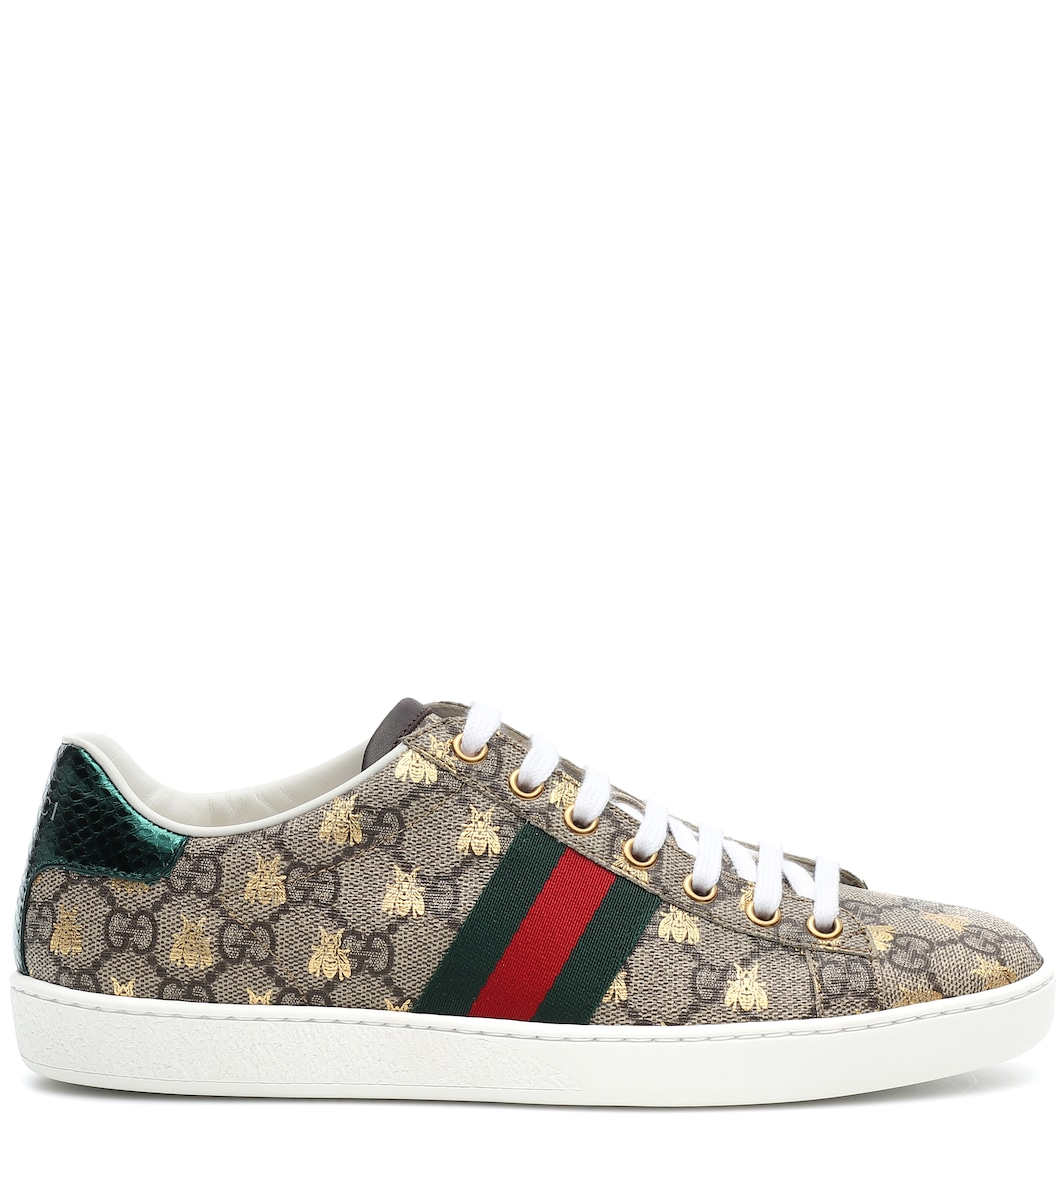 706d1f44c5406 Ace Leather-Trimmed Printed Sneakers